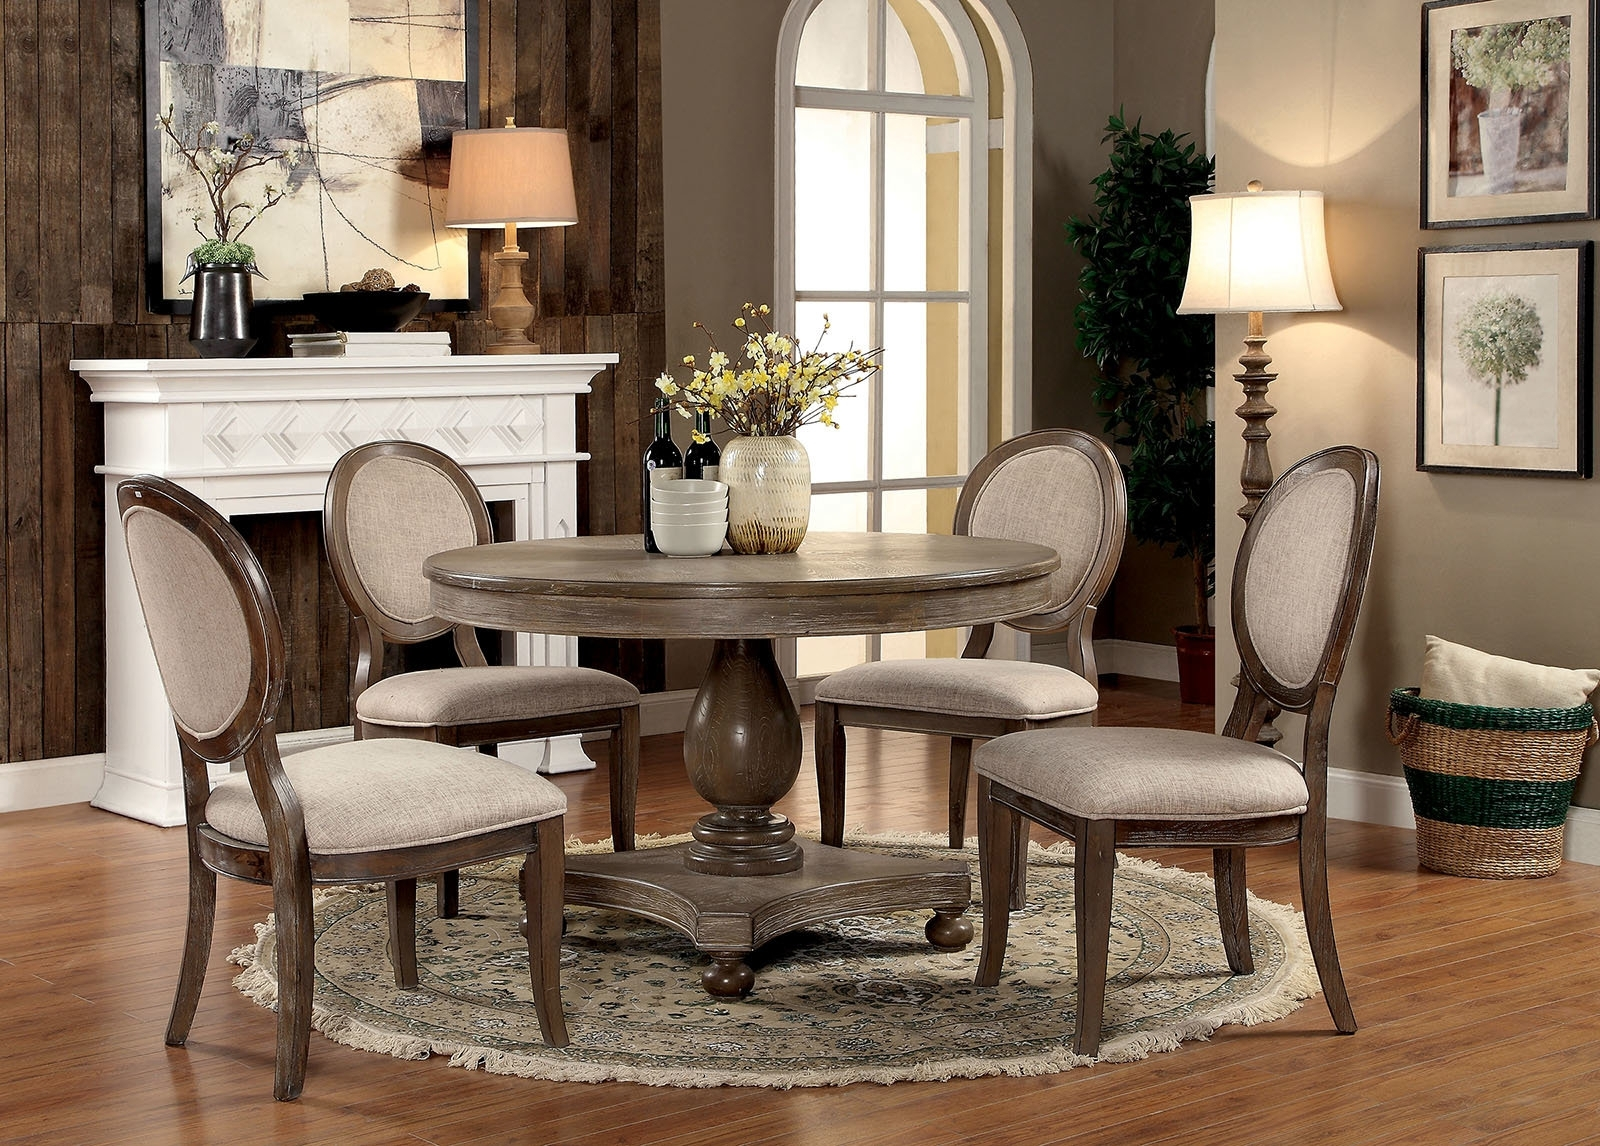 Wayfair With Craftsman 5 Piece Round Dining Sets With Side Chairs (View 8 of 25)